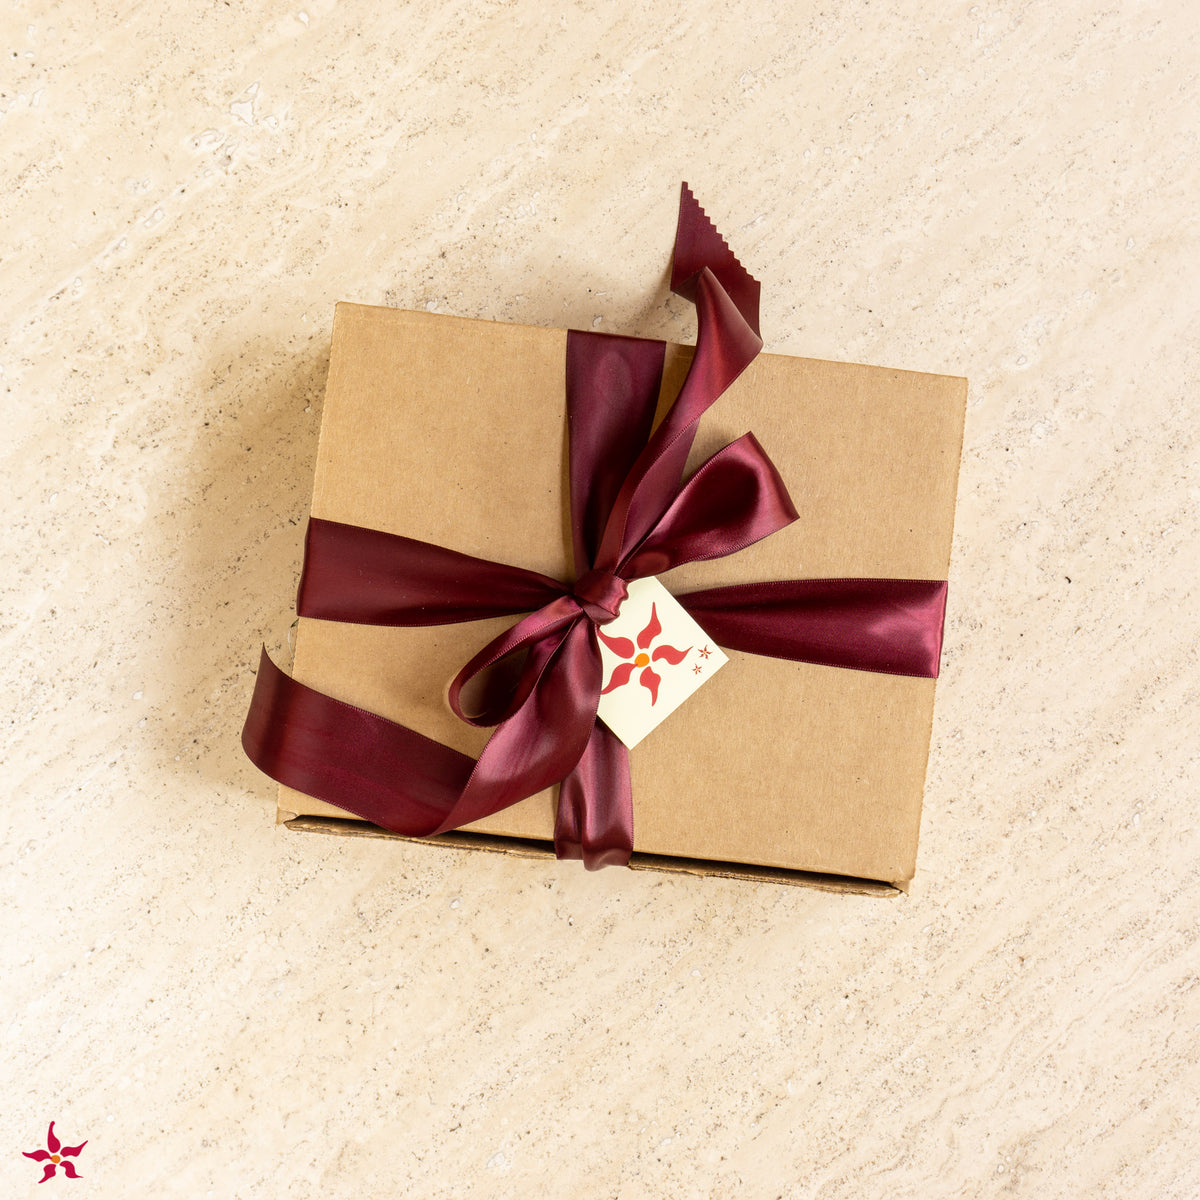 Mystery Chocolate Box - Expect the unexpected delivered straight to your door!